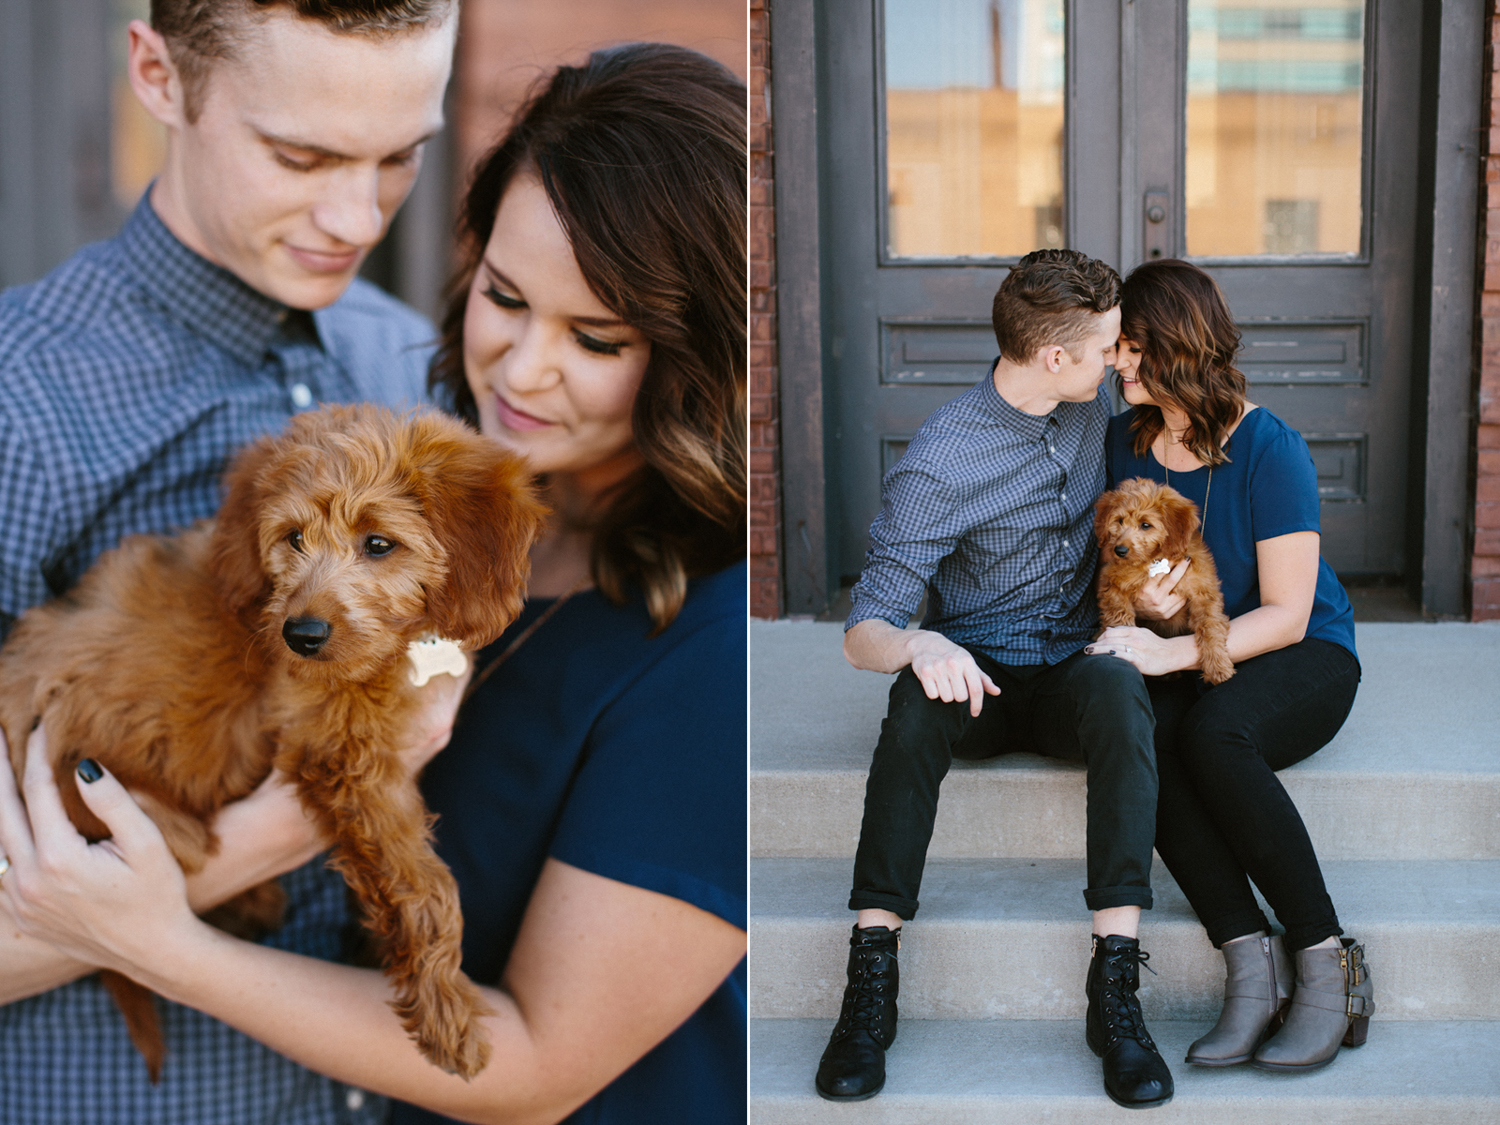 SiouxFalls_DesMoines_Wedding_Engagement_Photographer_03.jpg